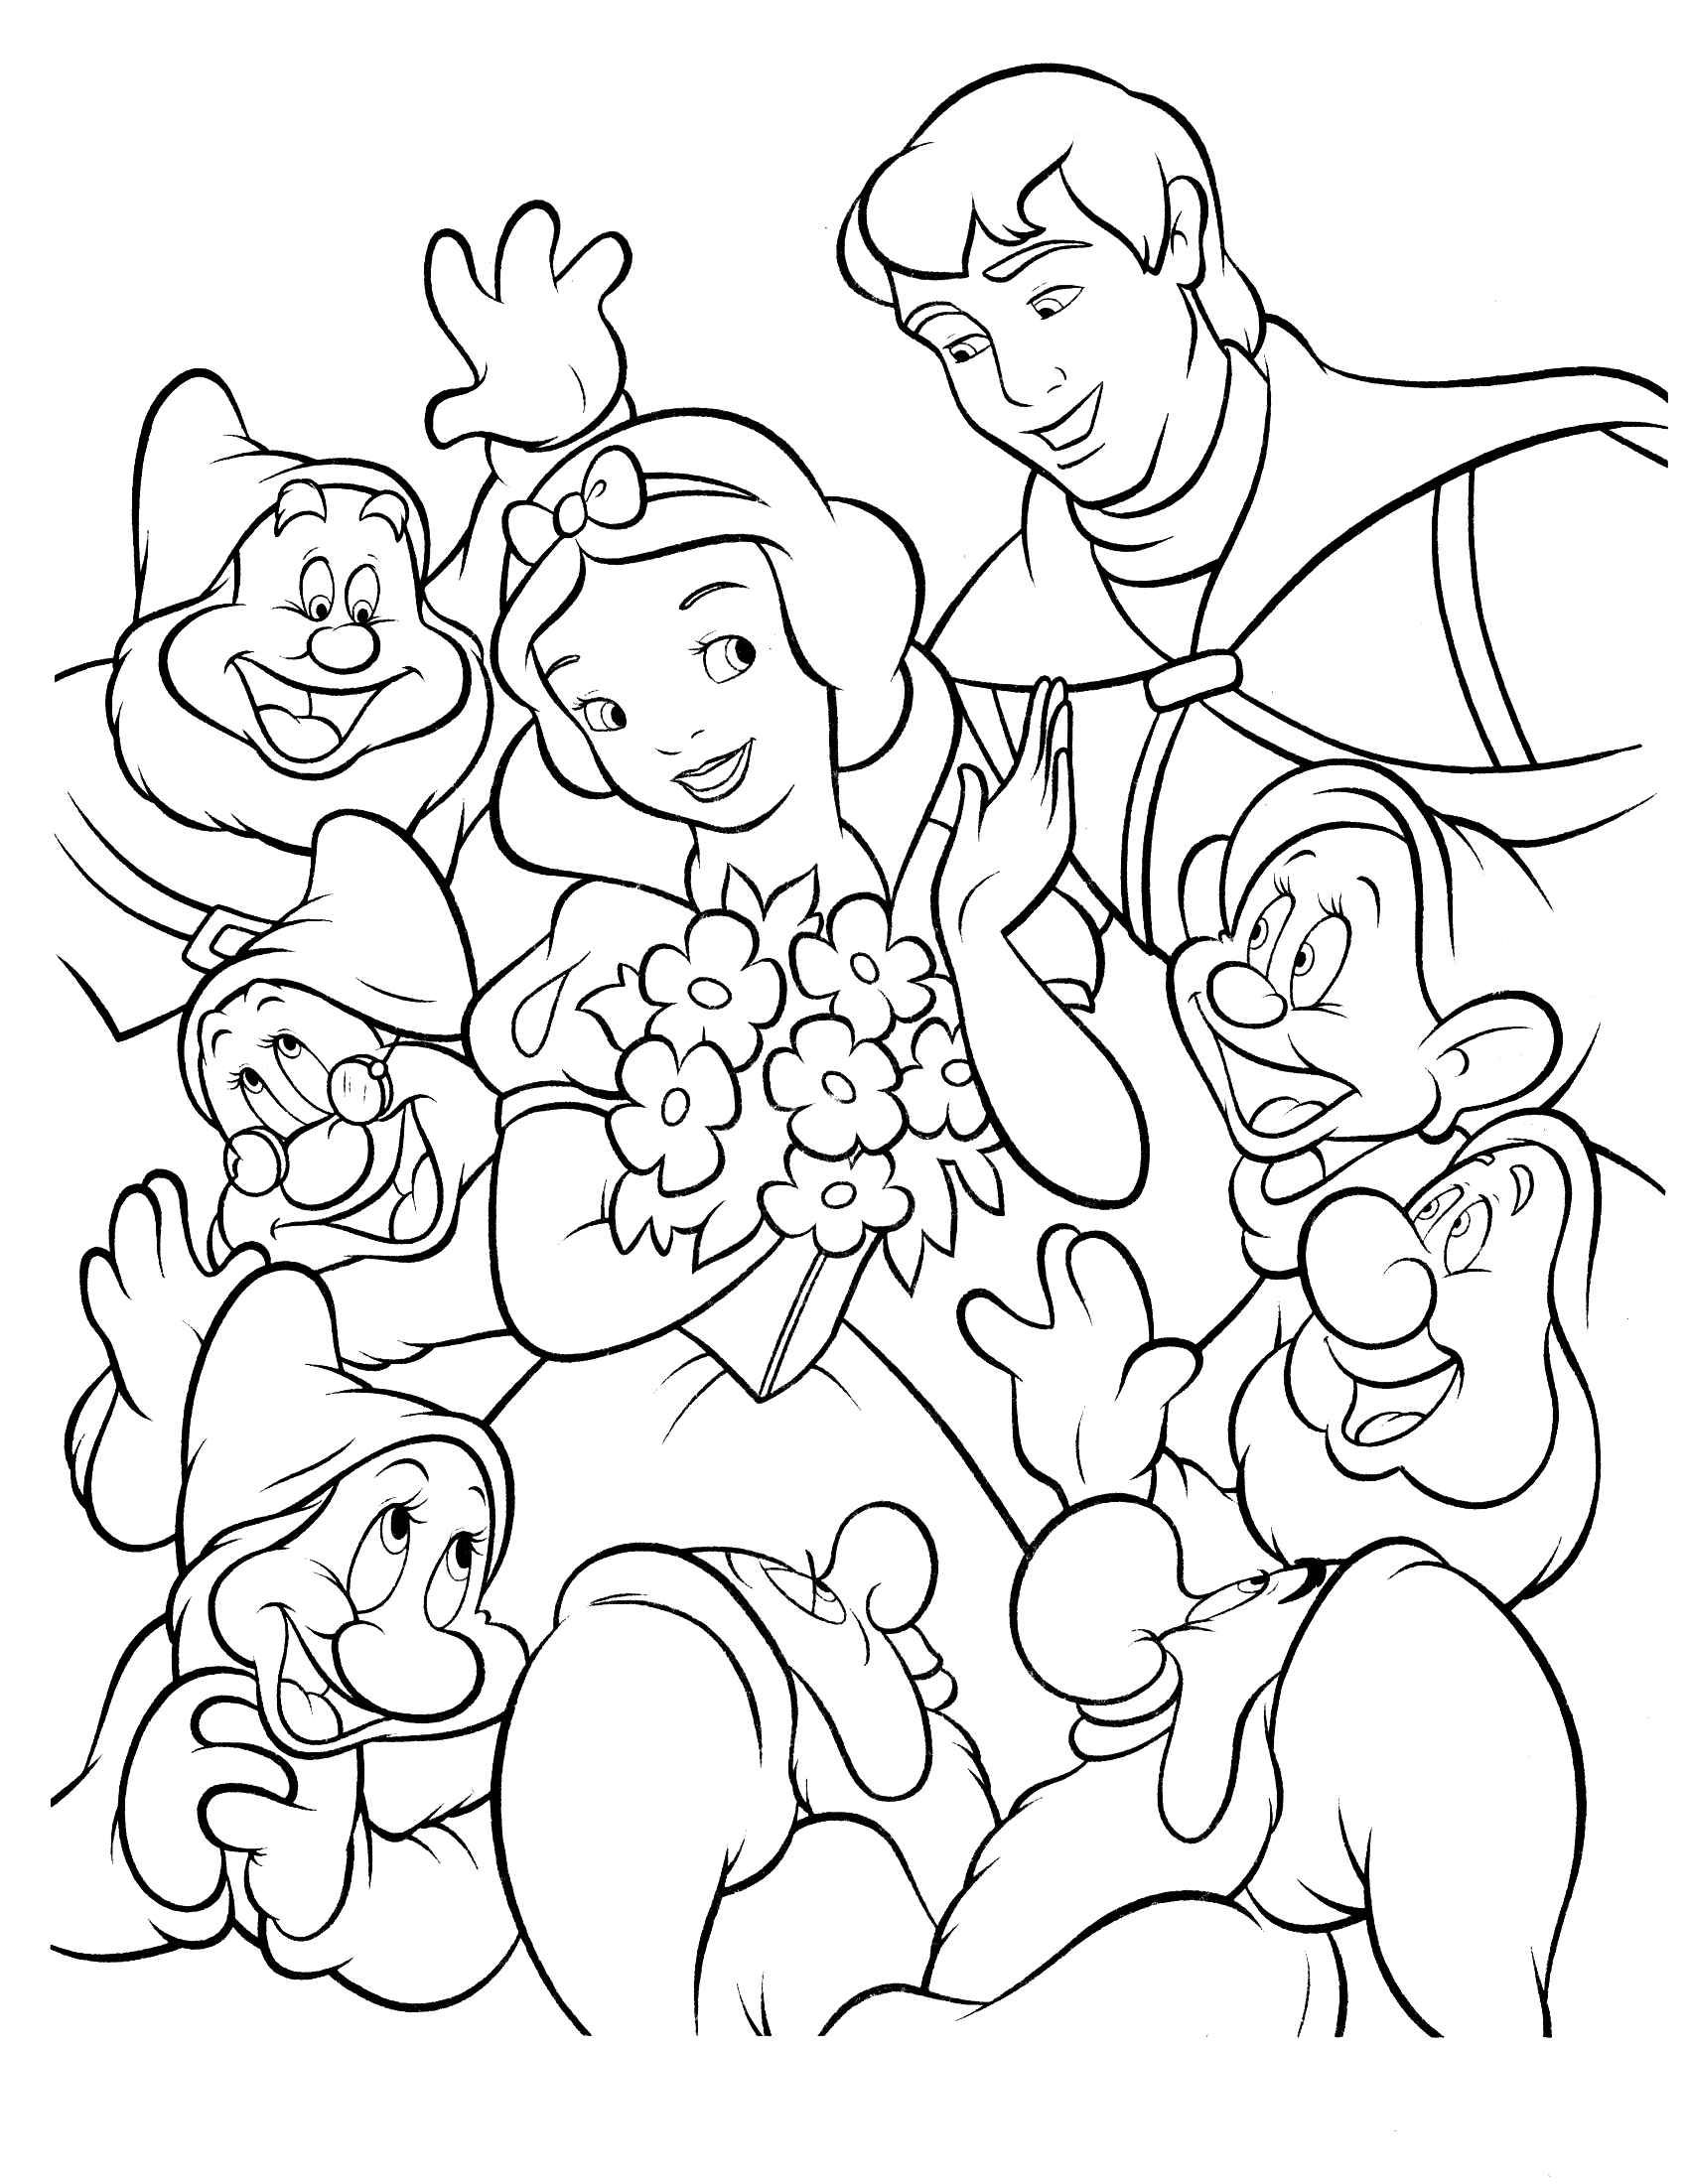 Snow White the main characters